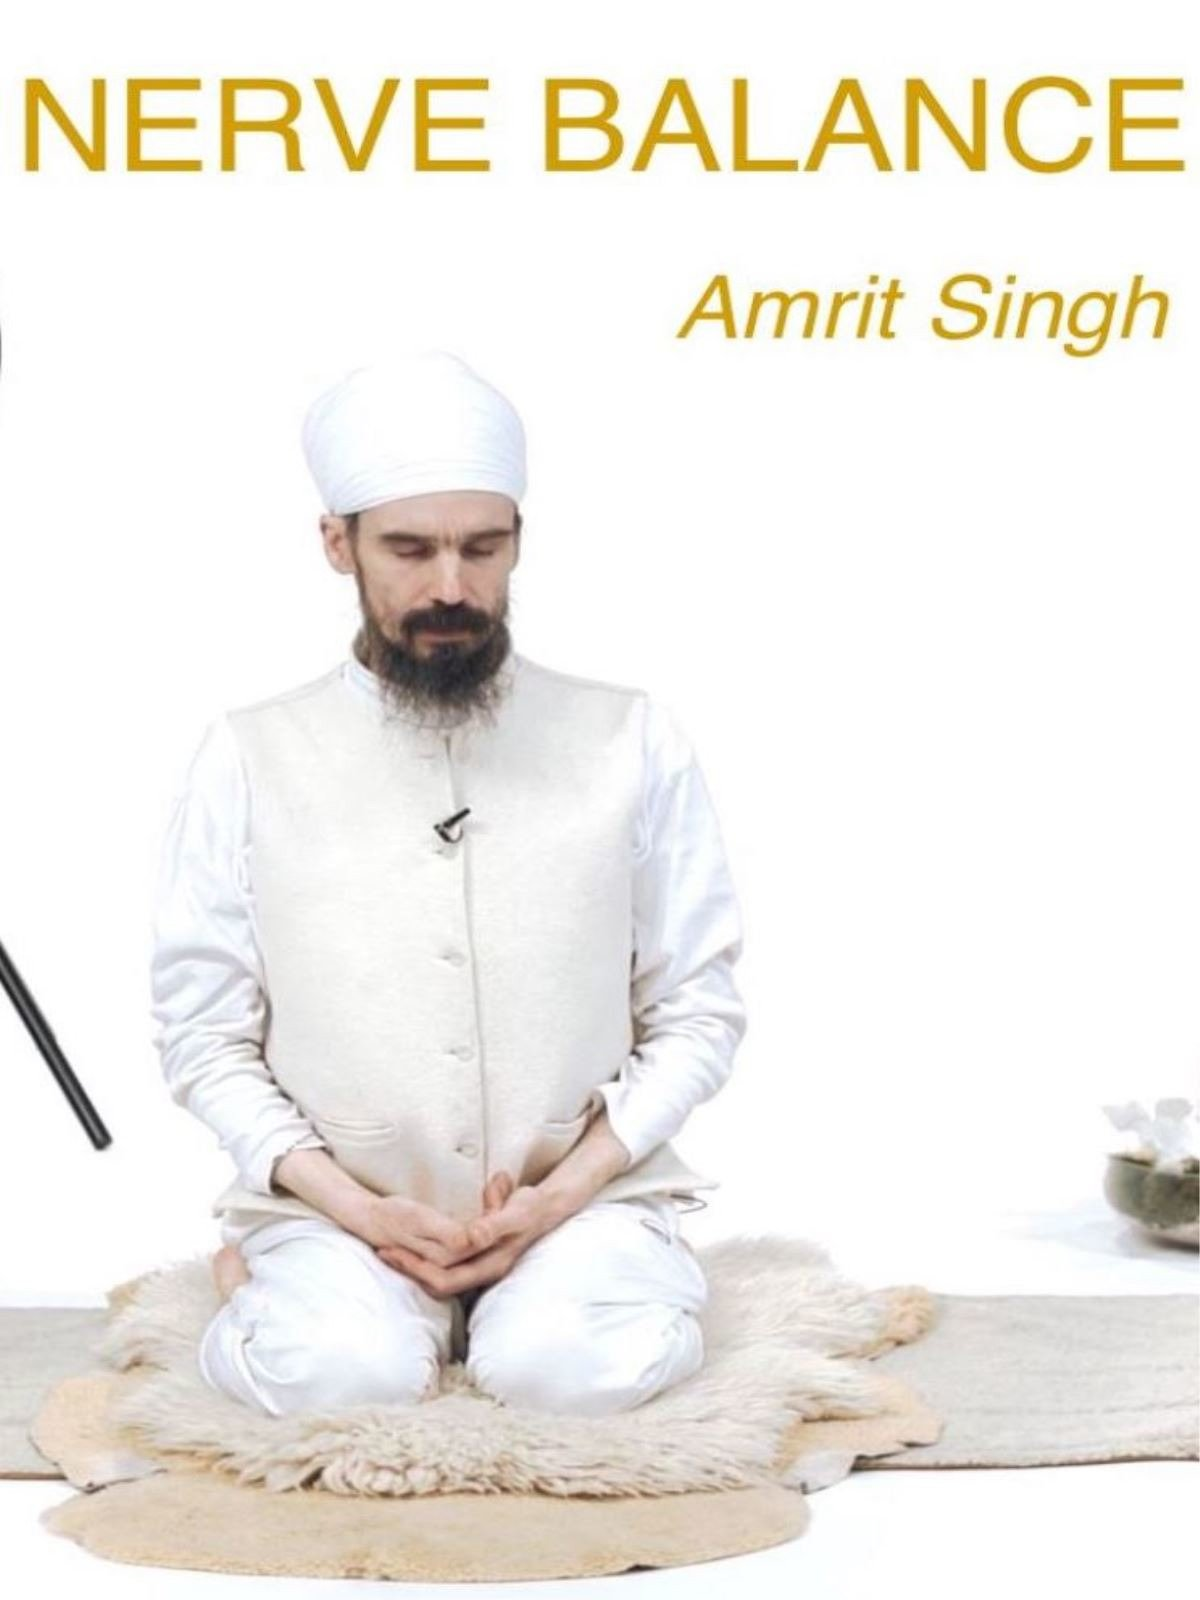 Nerve balance with Amrit Singh